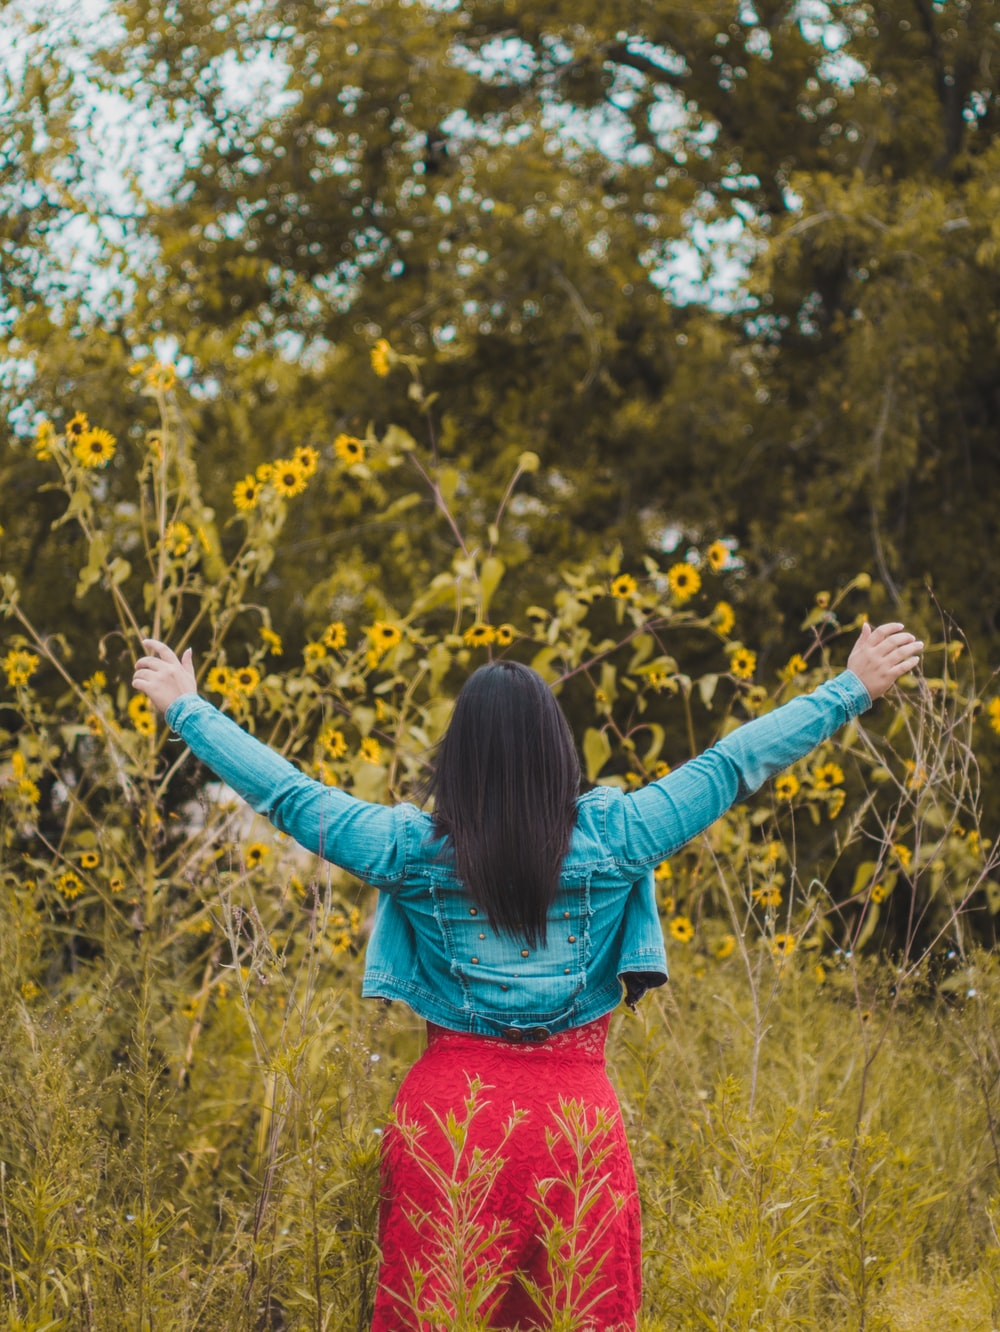 woman raising two hands in front of yellow sunflowers